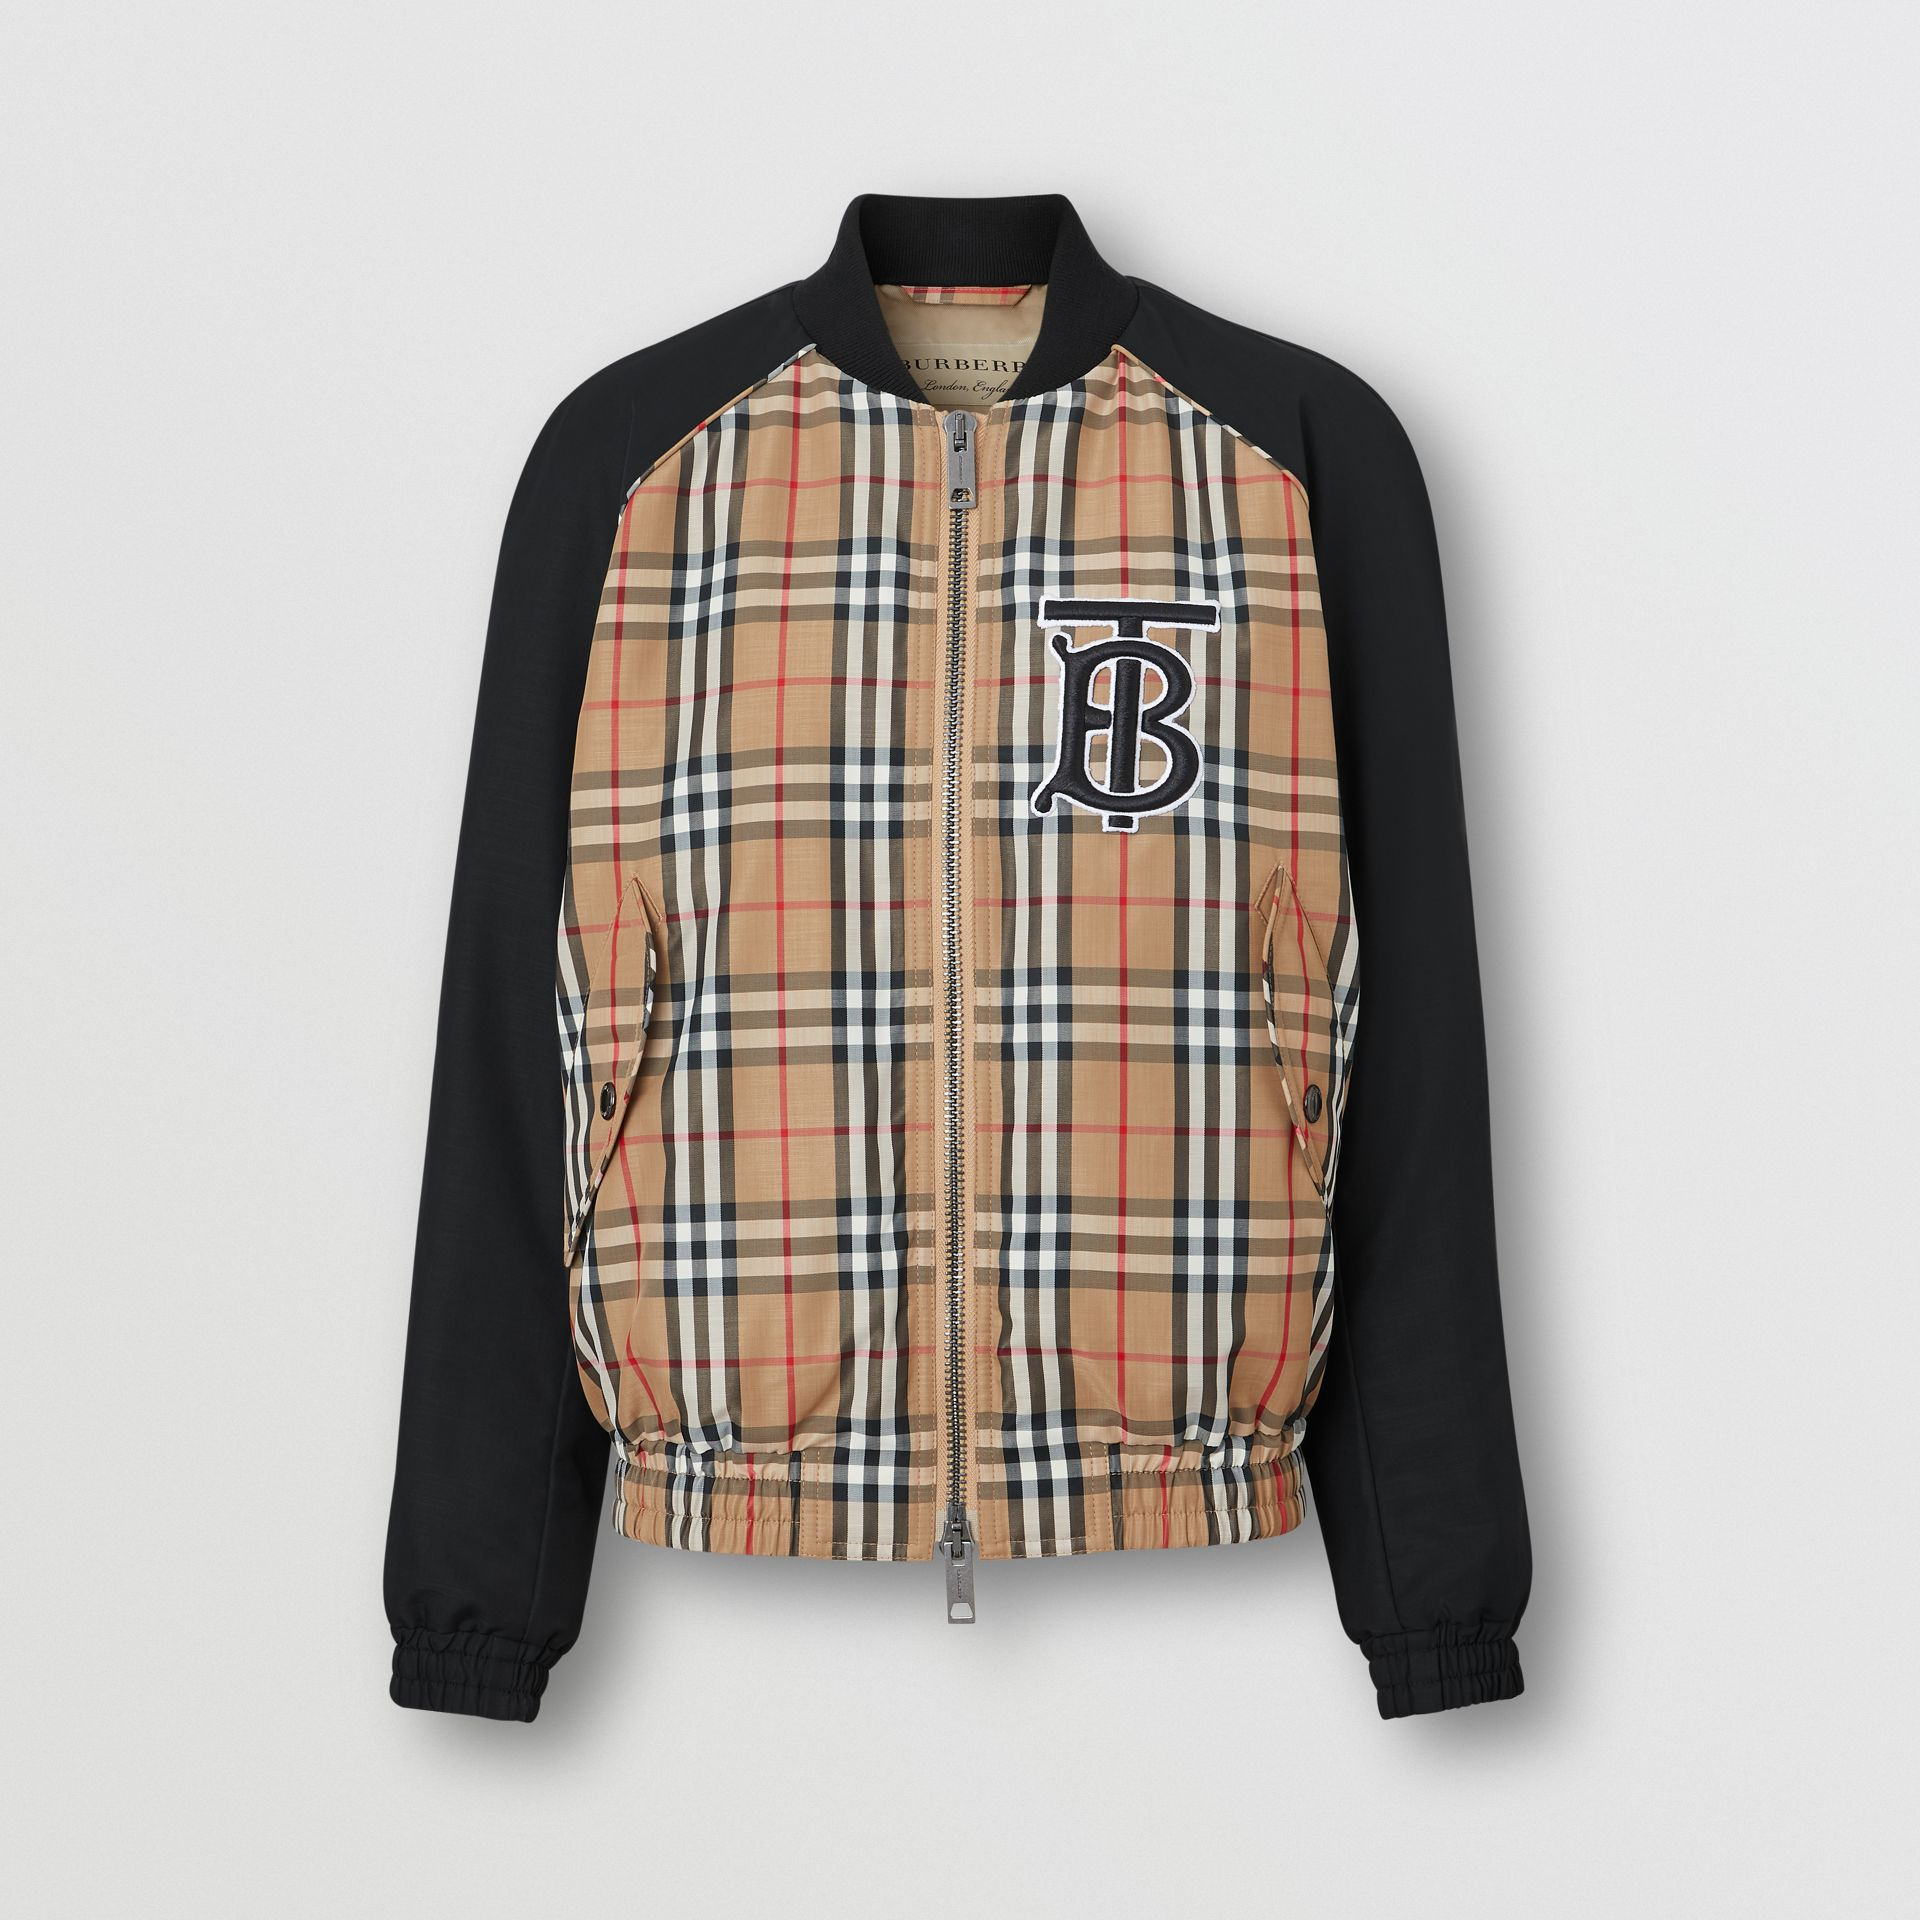 Monogram Motif Vintage Check Bomber Jacket in Black - Women | Burberry United States - gallery image 3